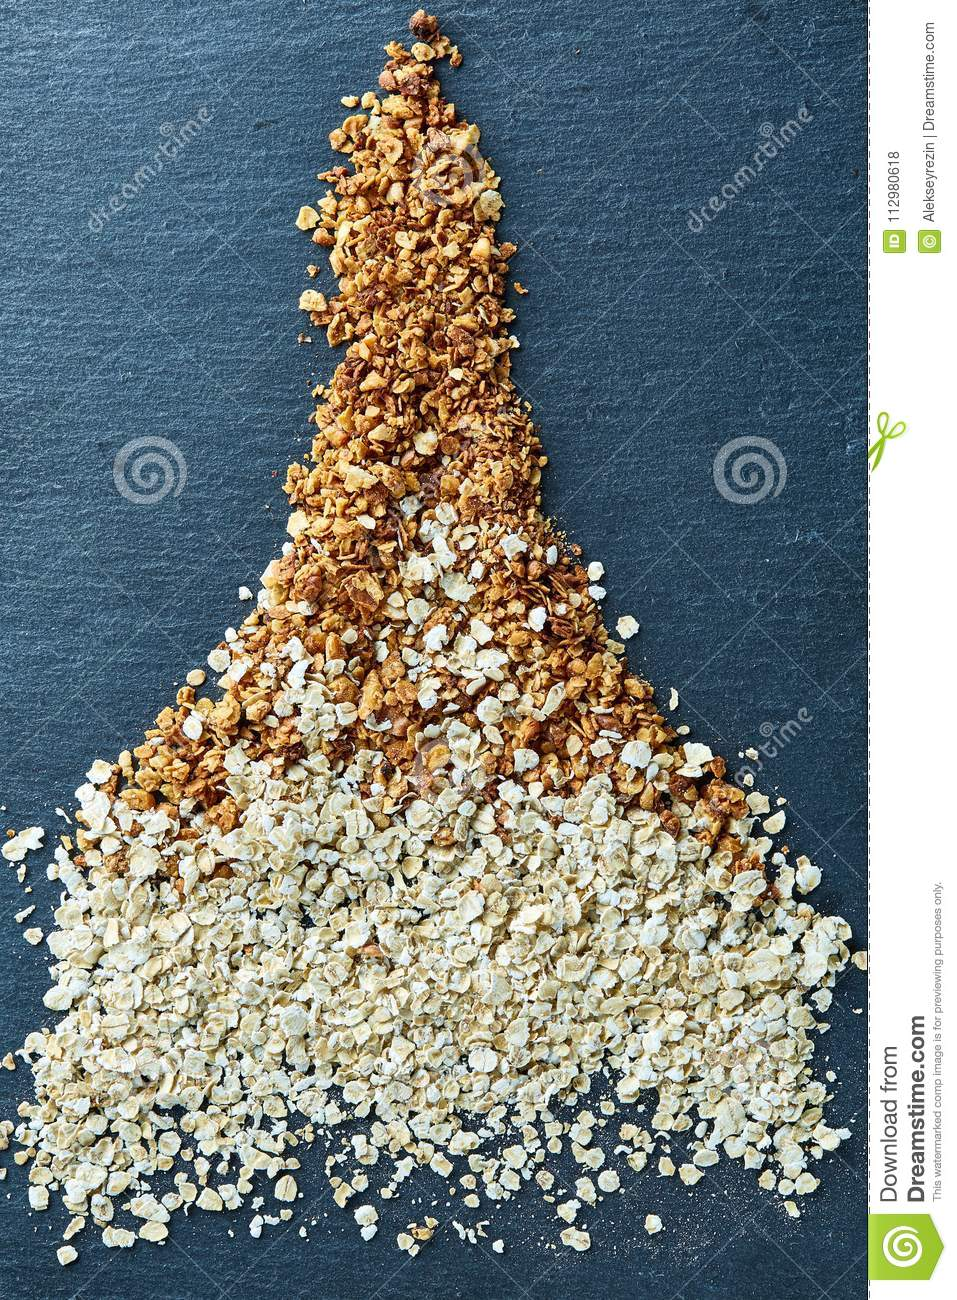 Healthy mix of granola and oatmeal on dark board over wooden background, top view, close-up, selective focus